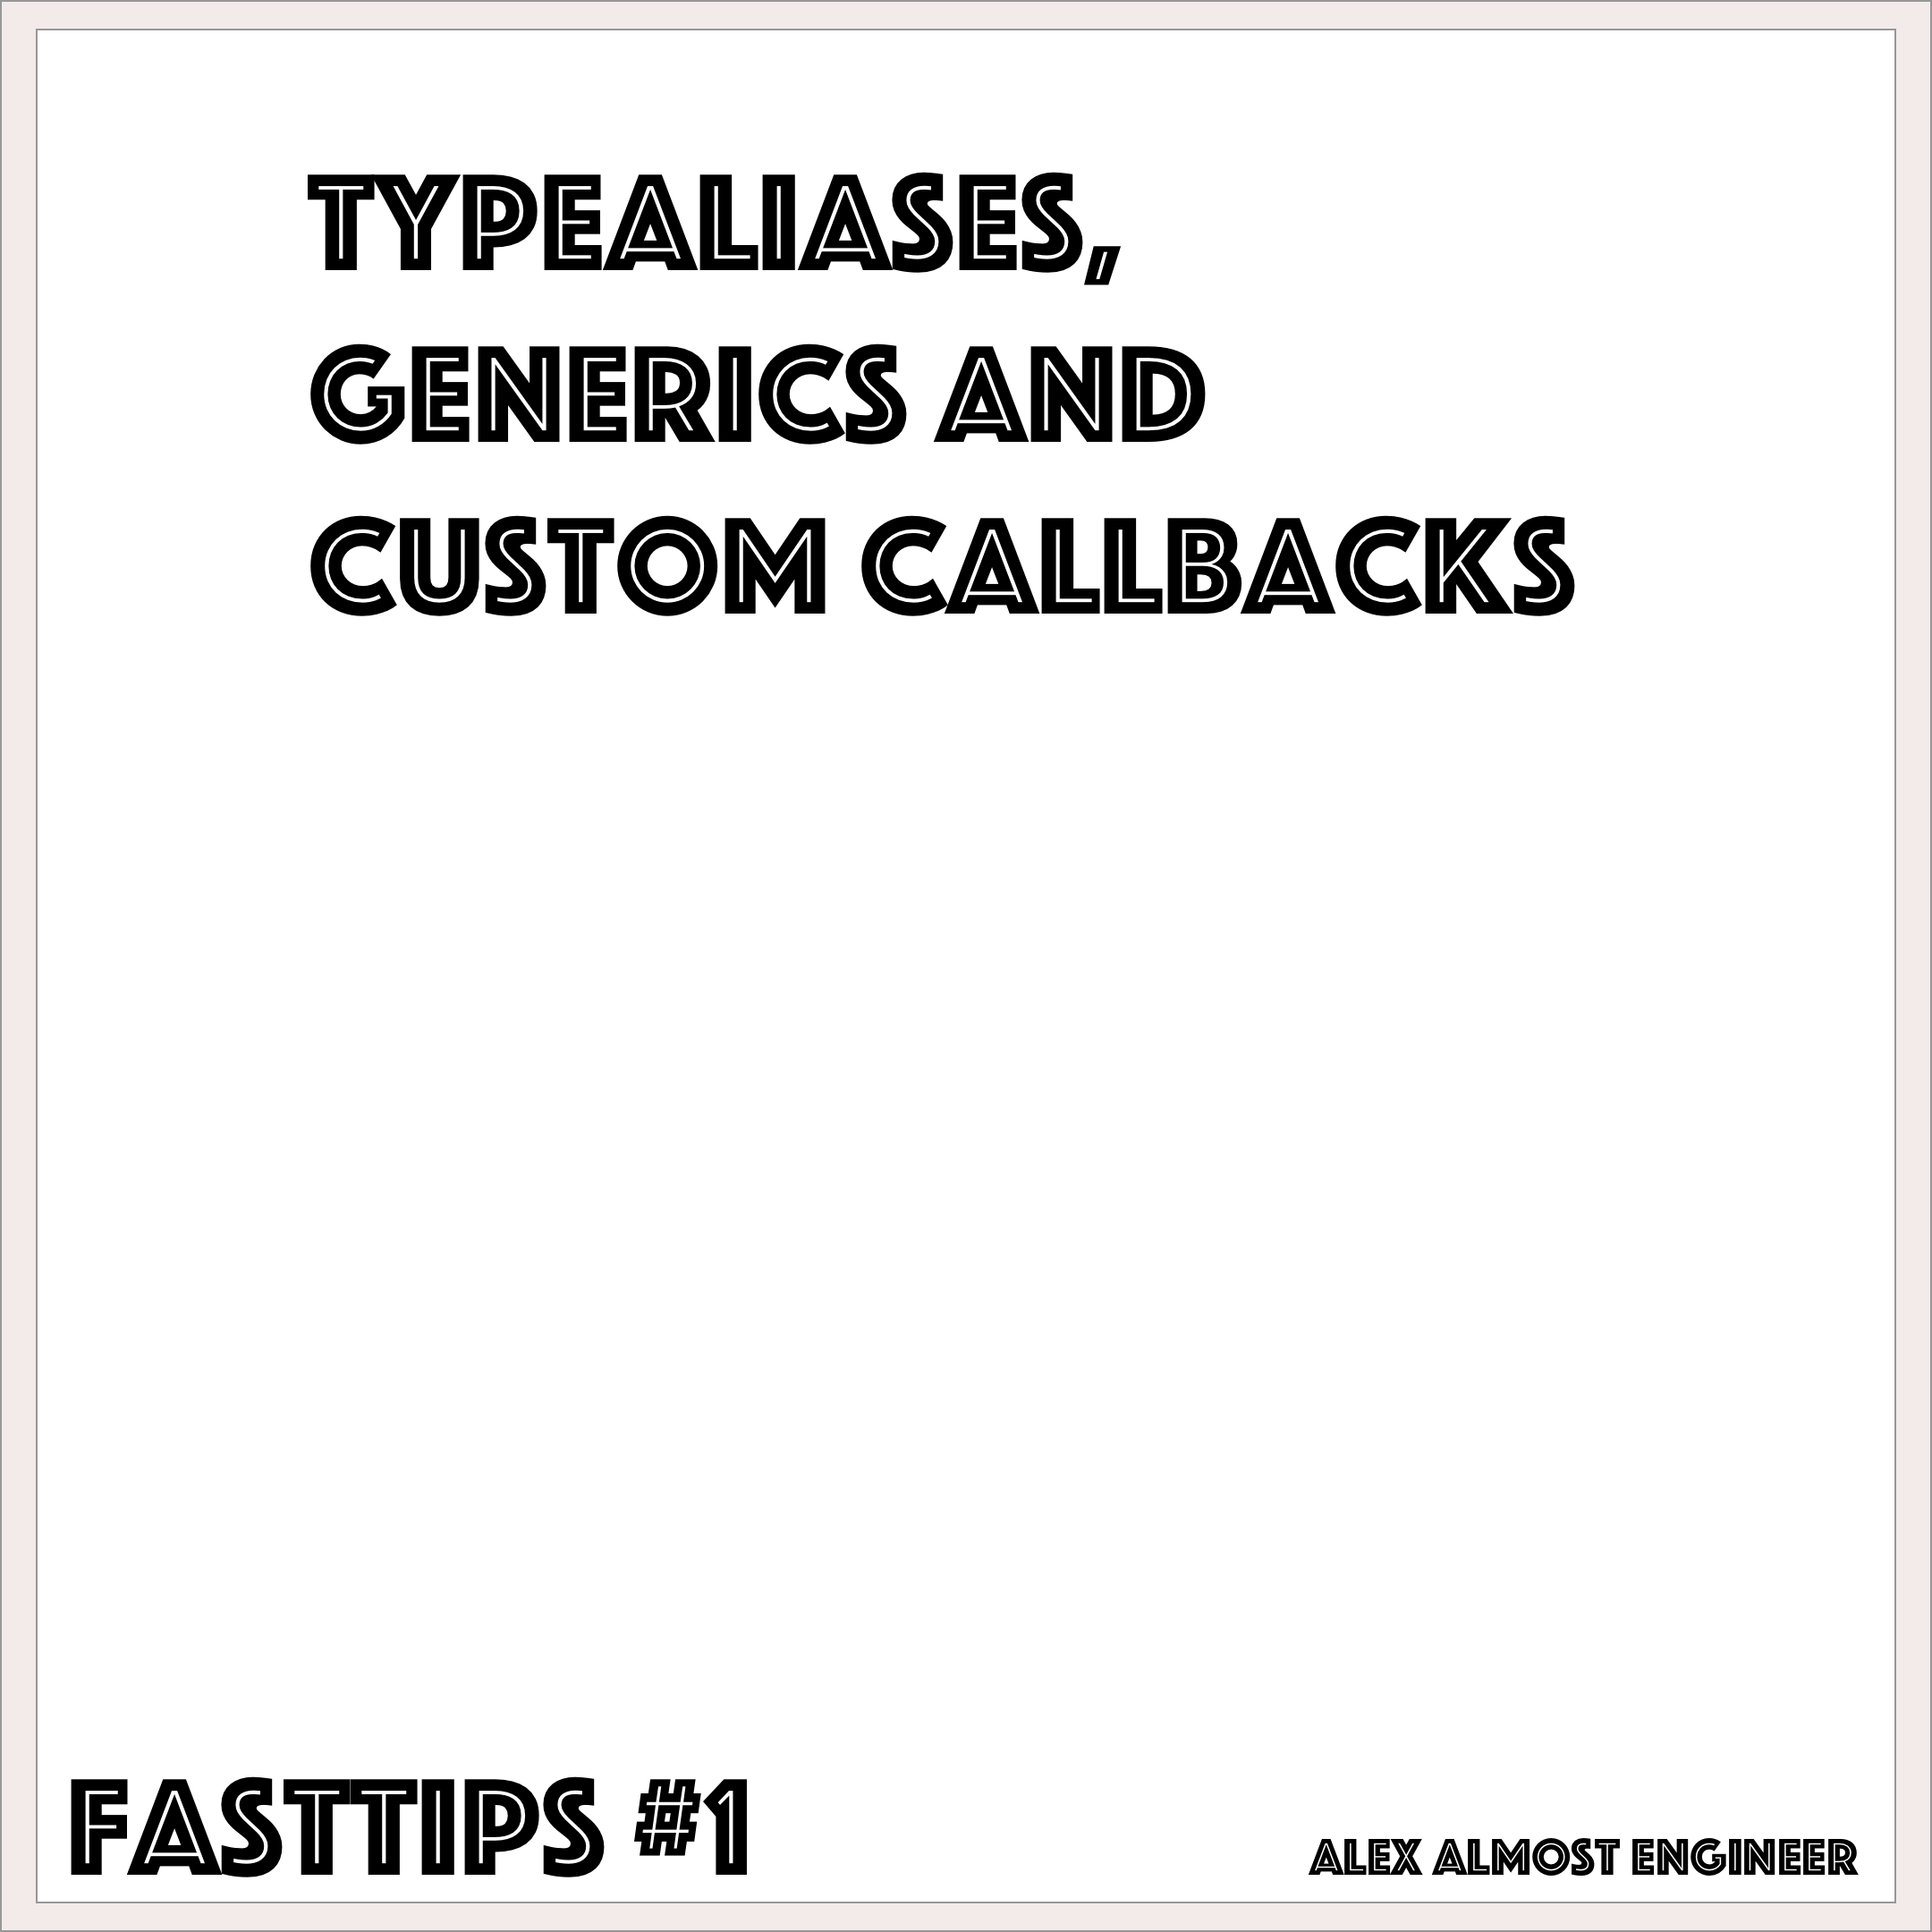 Typealias, Generics, and Custom Callbacks